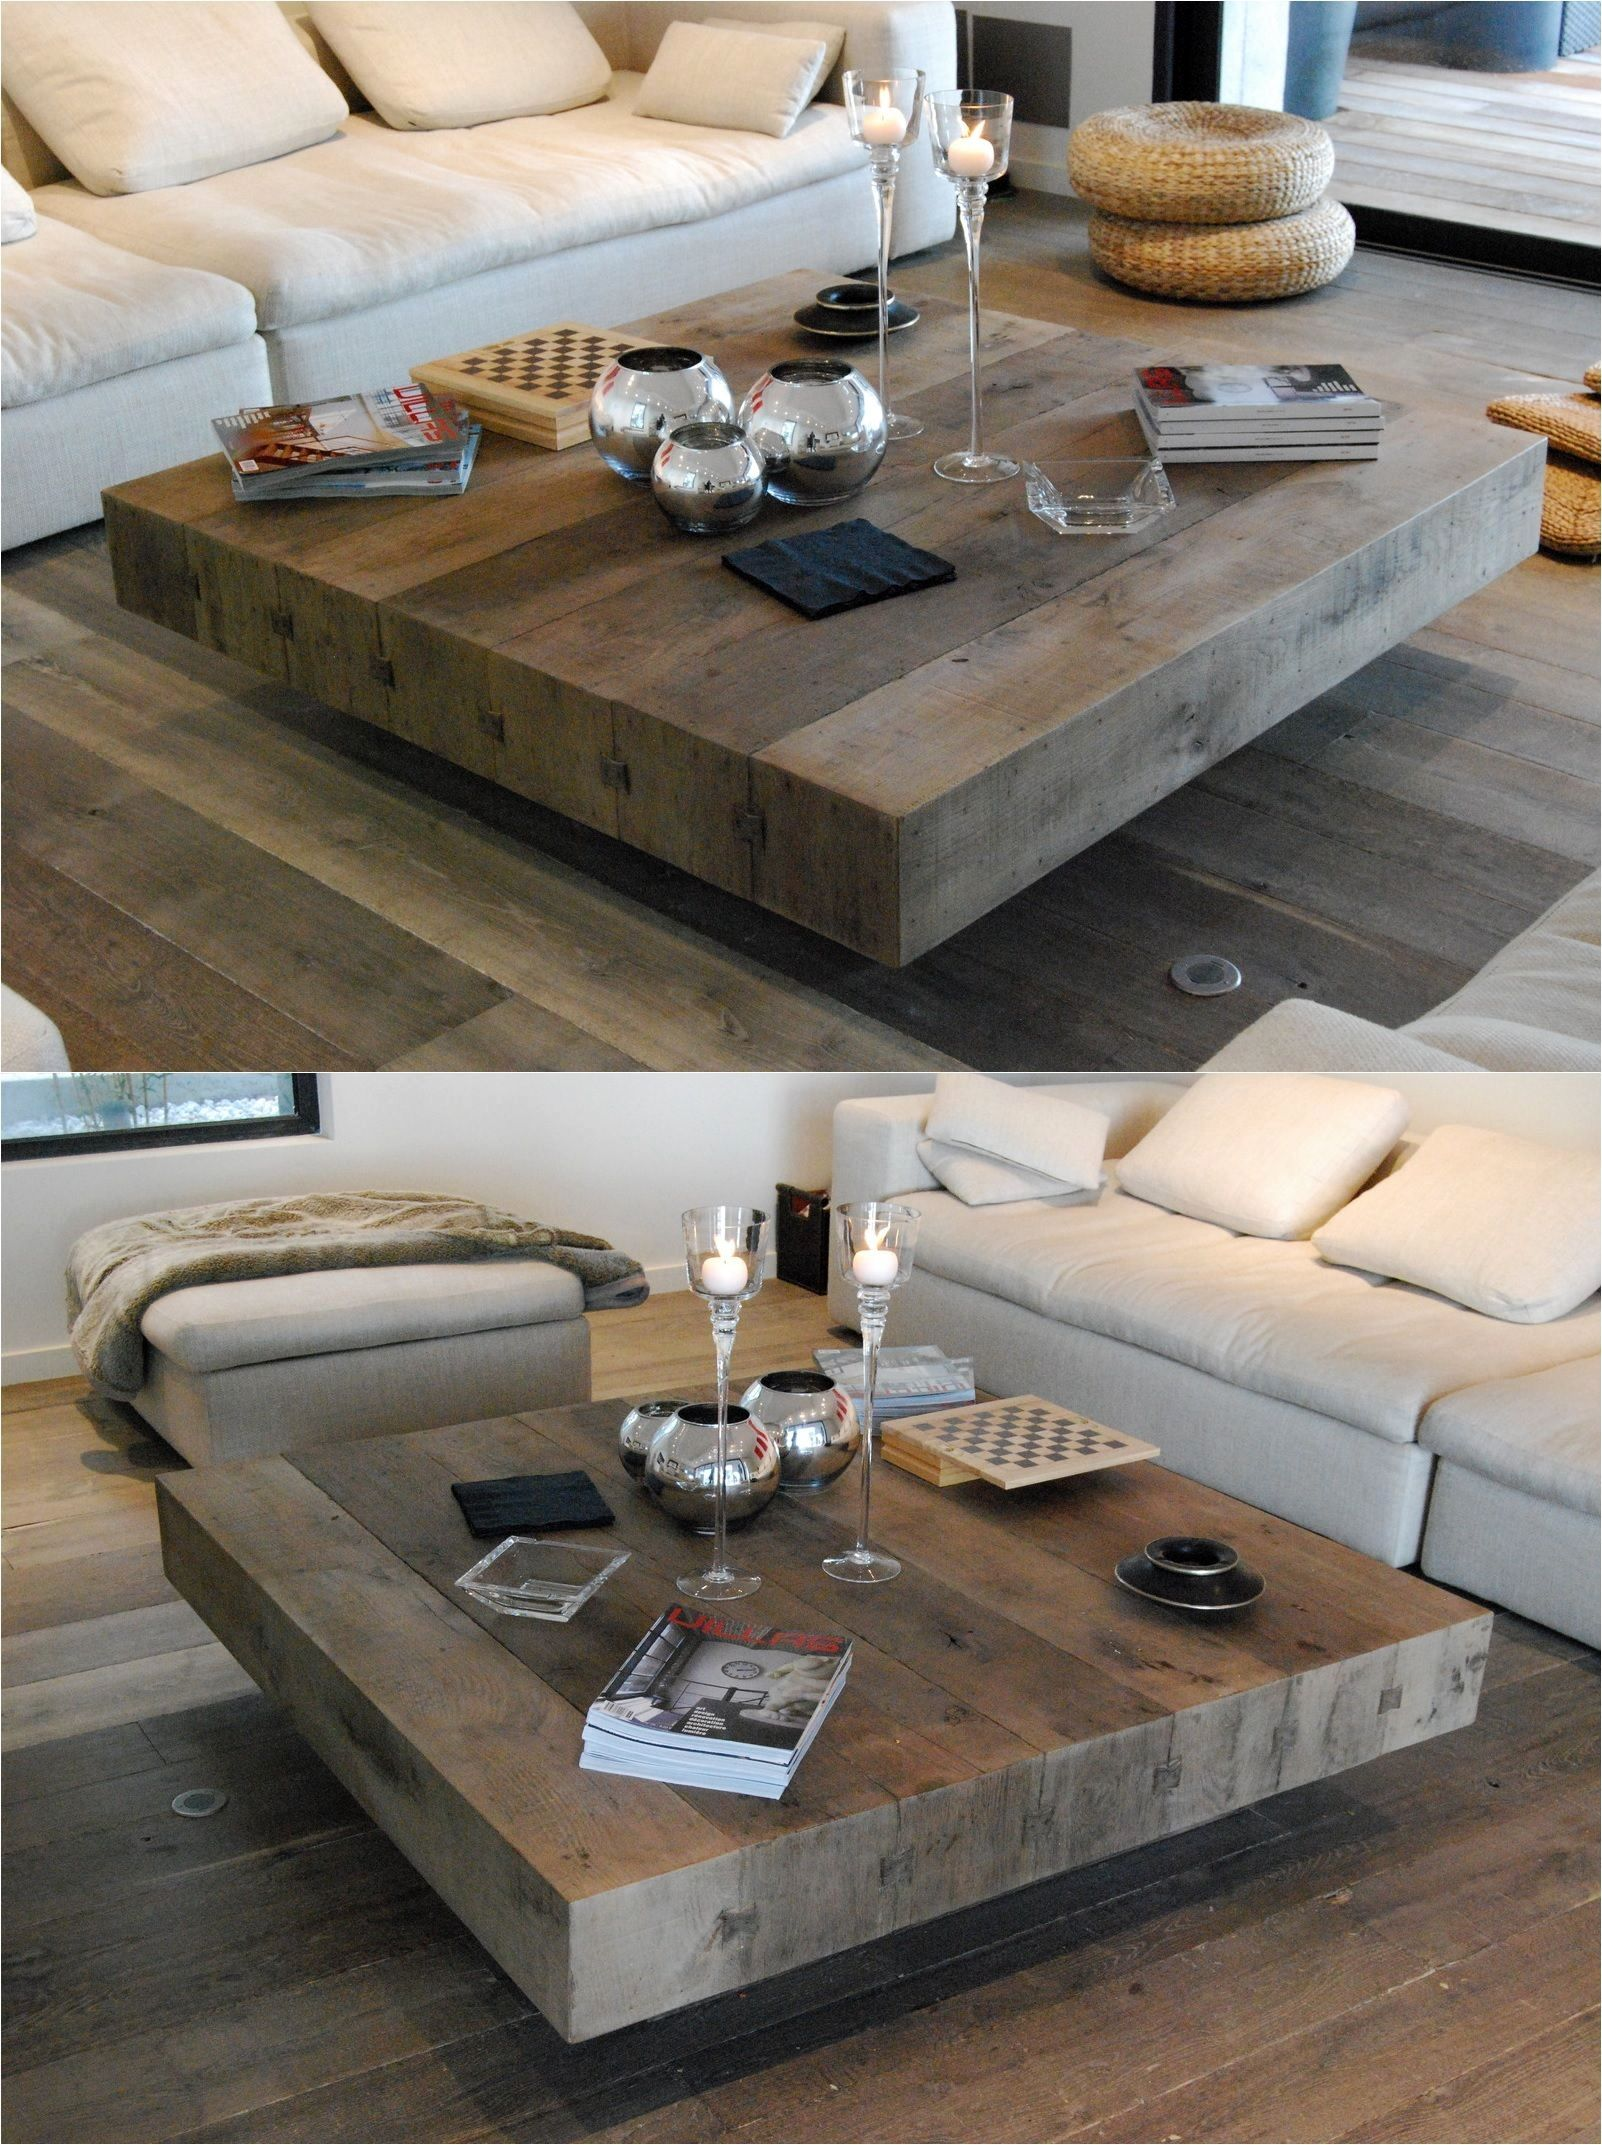 Easy Diy Coffee Table Square Wooden Coffee Table Rustic Coffee Tables Coffee Table Wood [ 2145 x 1602 Pixel ]